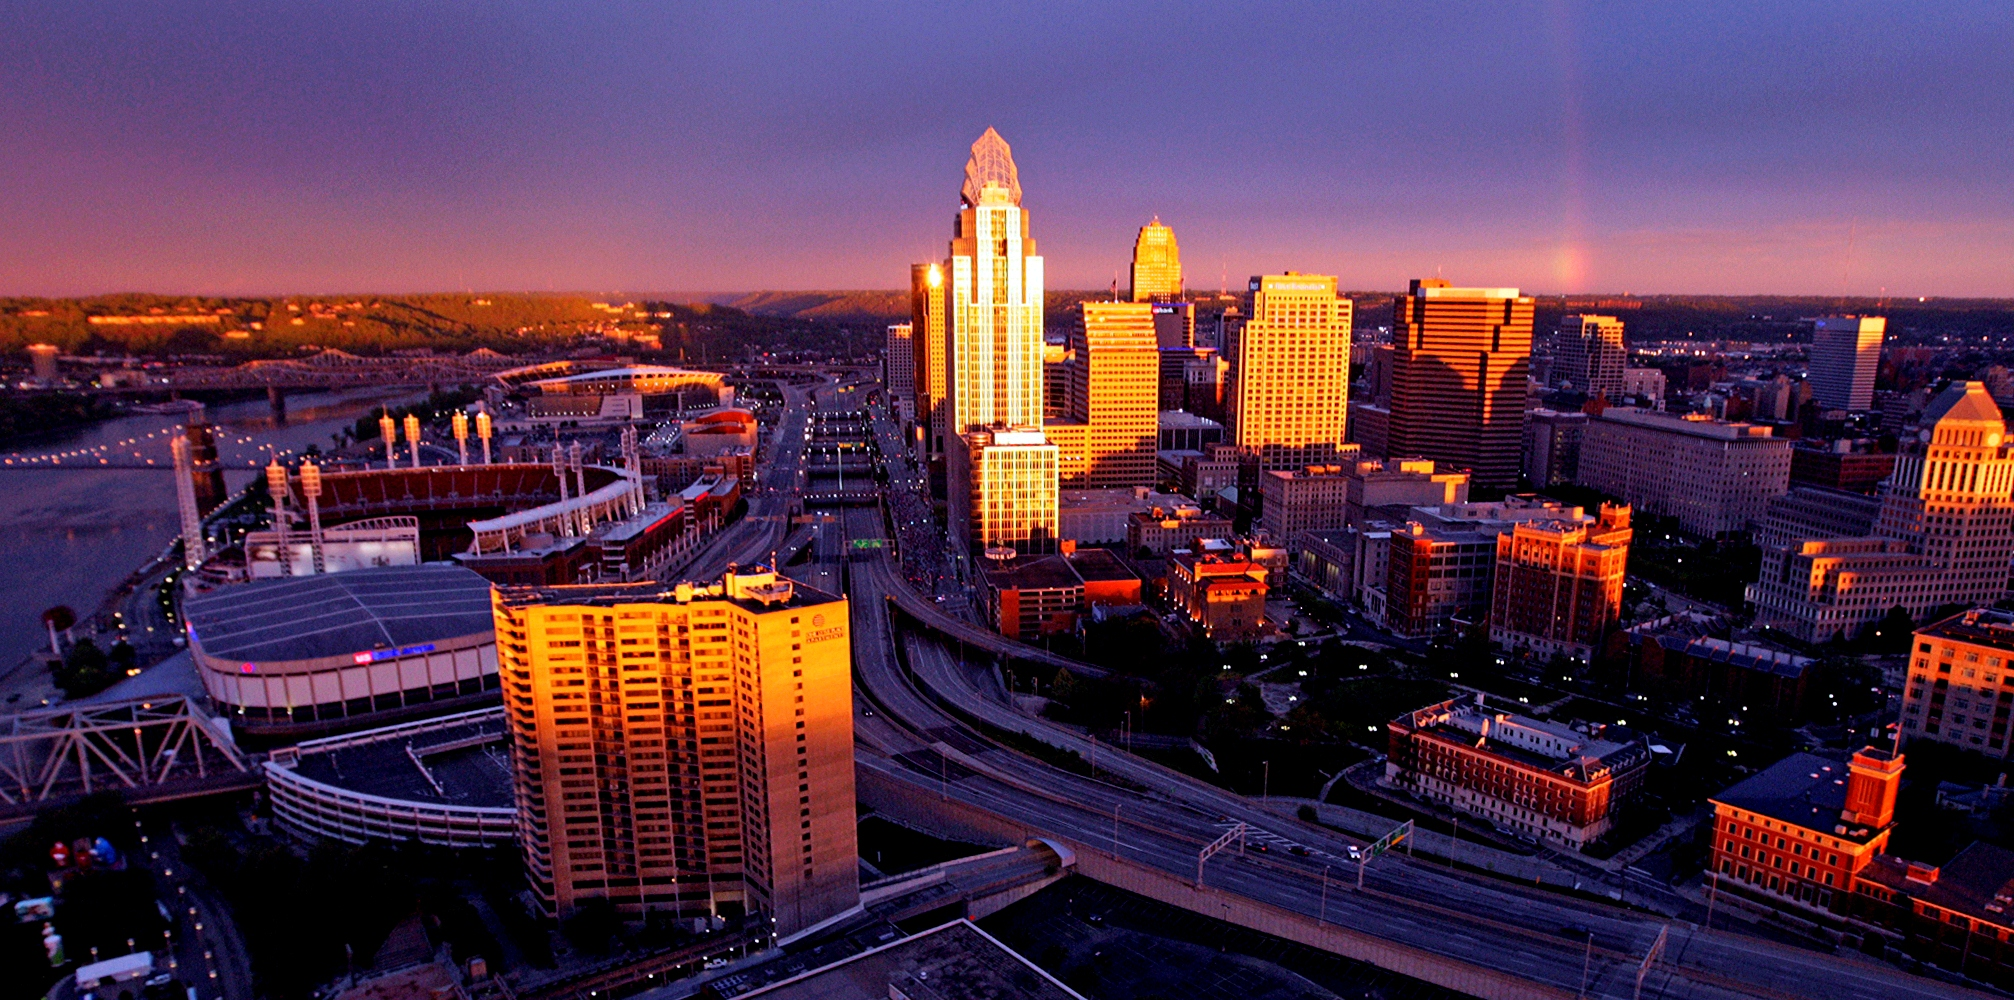 Cincinnati Best Of Cincinnati OH Tourism TripAdvisor - 10 things to see and do in cincinnati